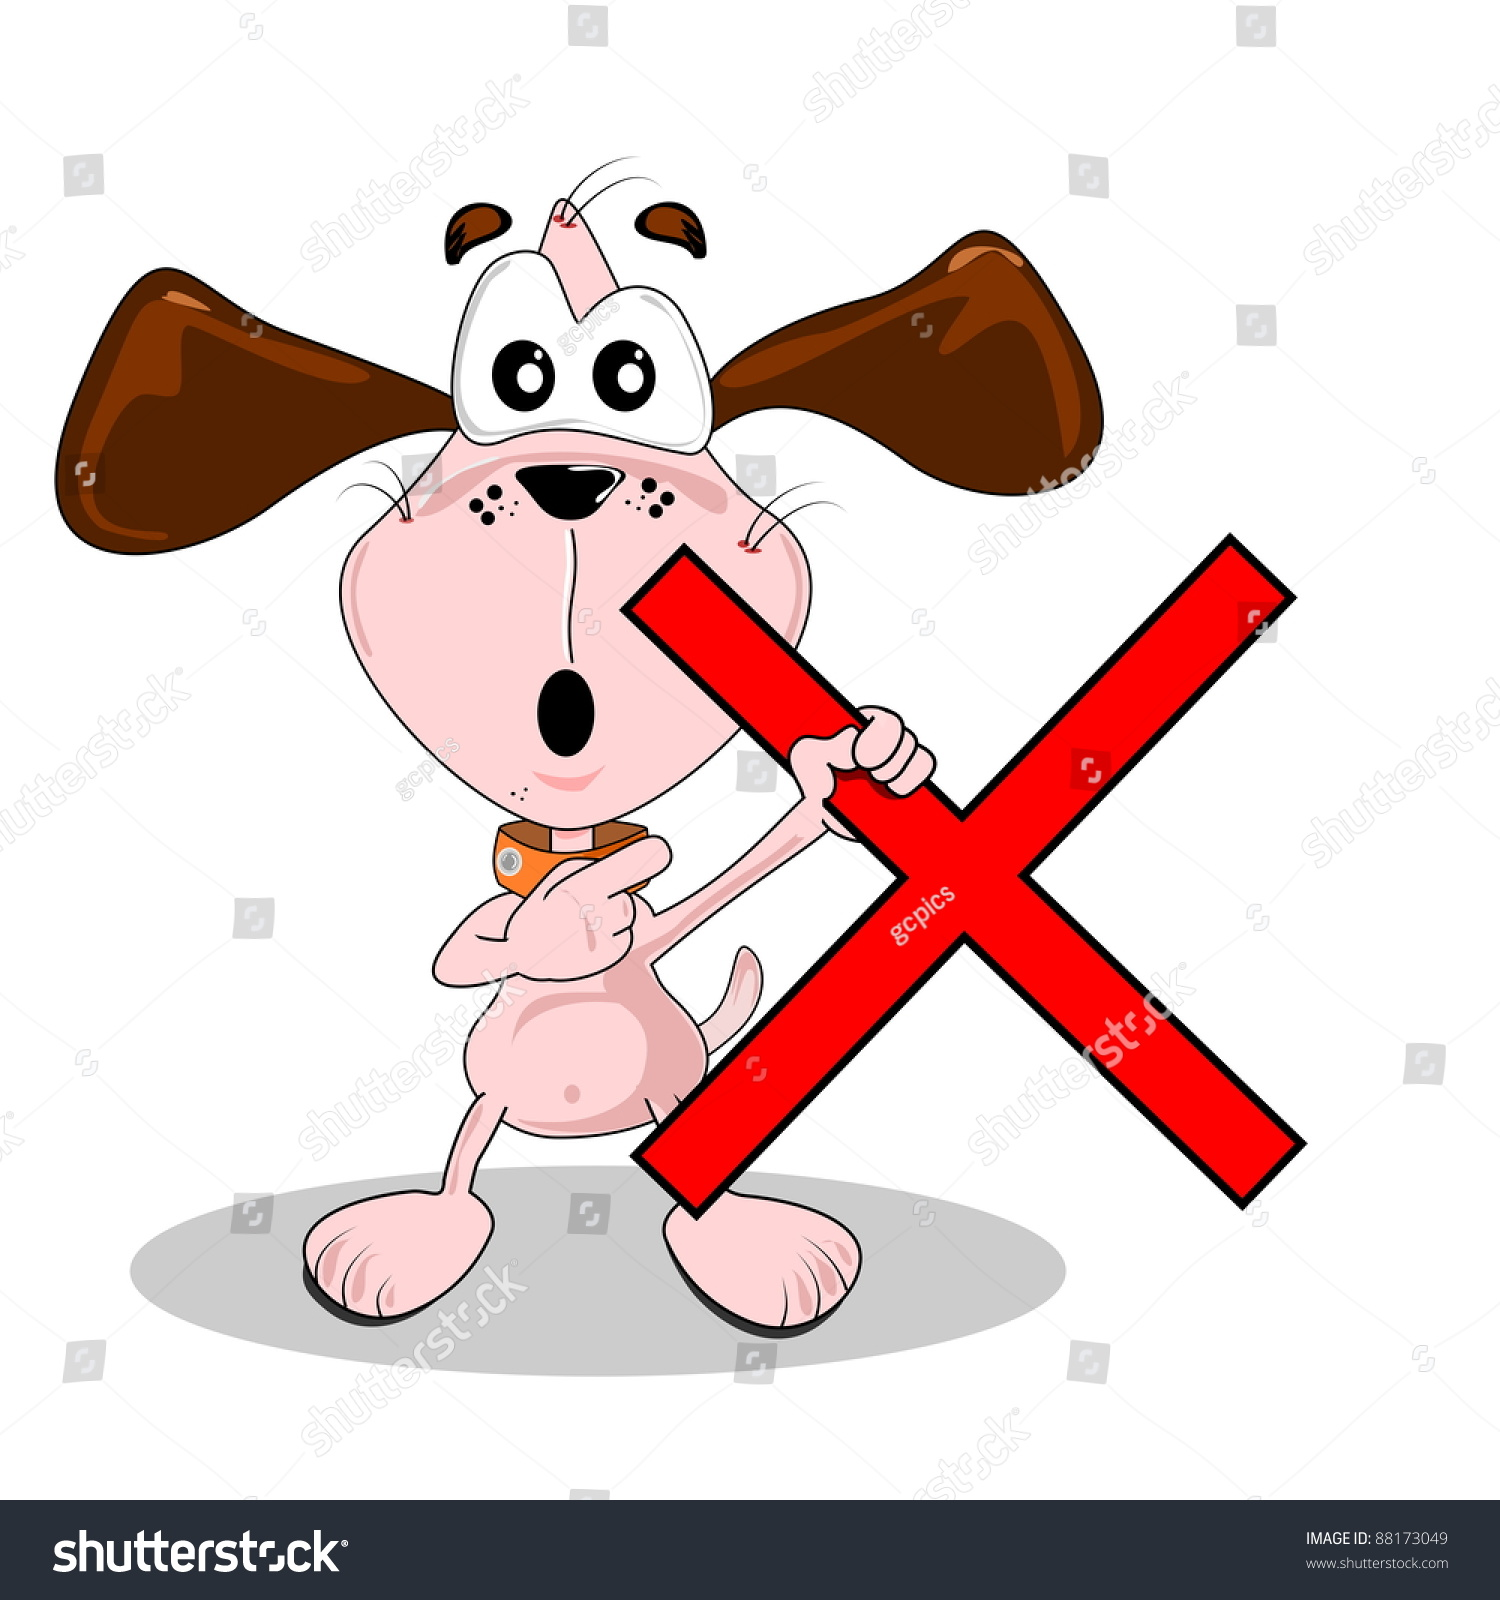 A Wrong Red Cross Being Held By A Cartoon Dog Stock Photo